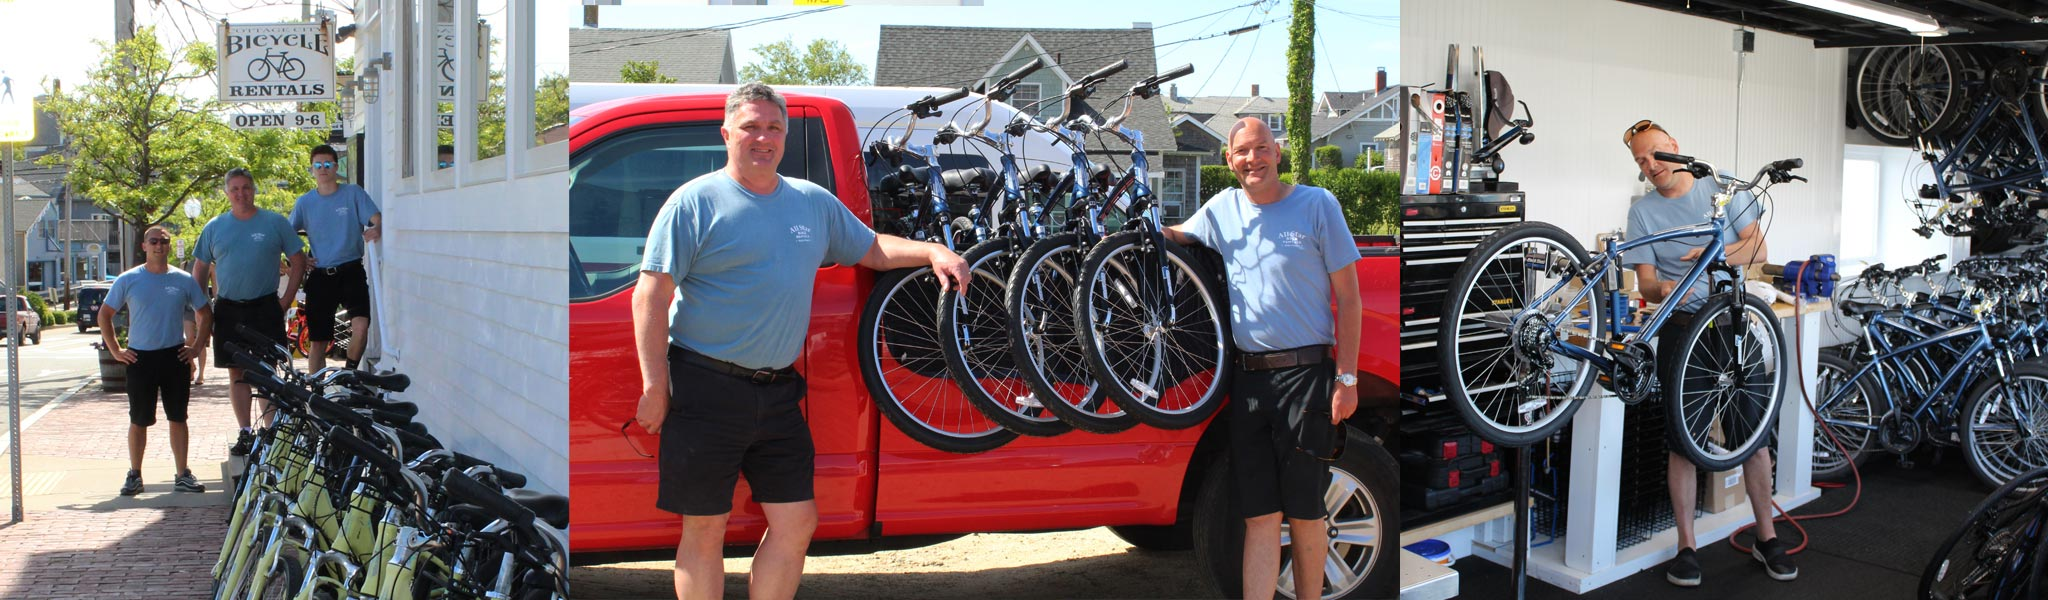 oak bluffs bike rental